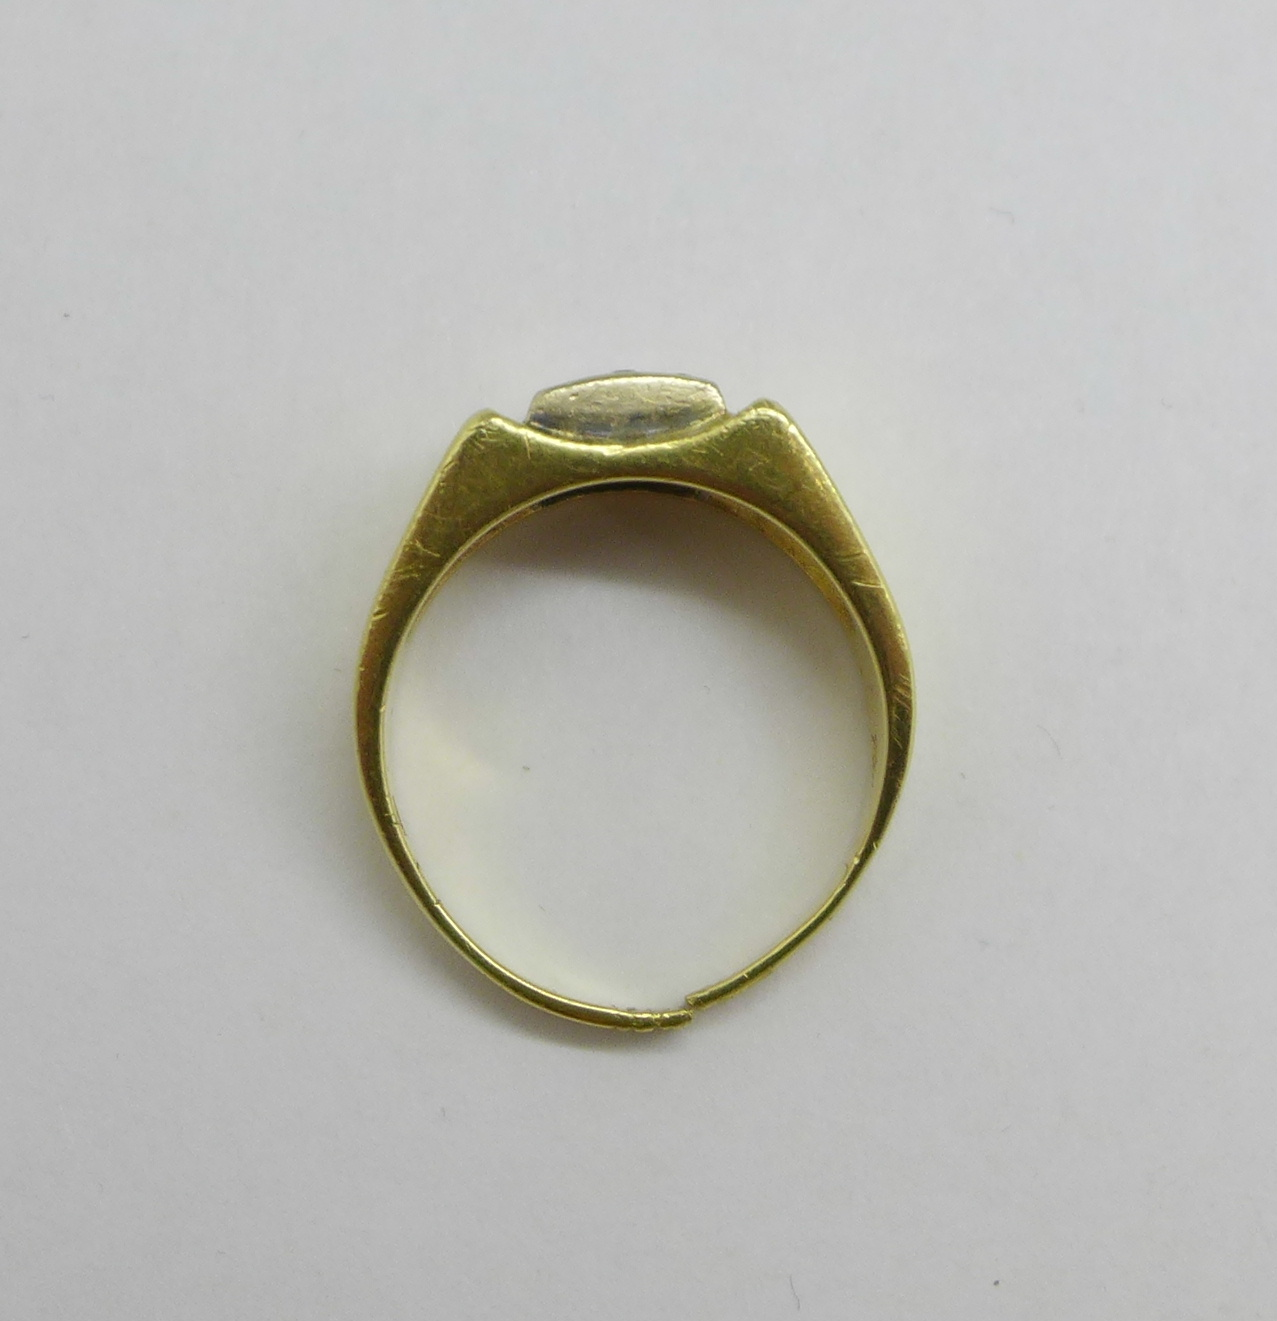 A 14ct gold and white stone ring, 7.9g, shank a/f - Image 3 of 4